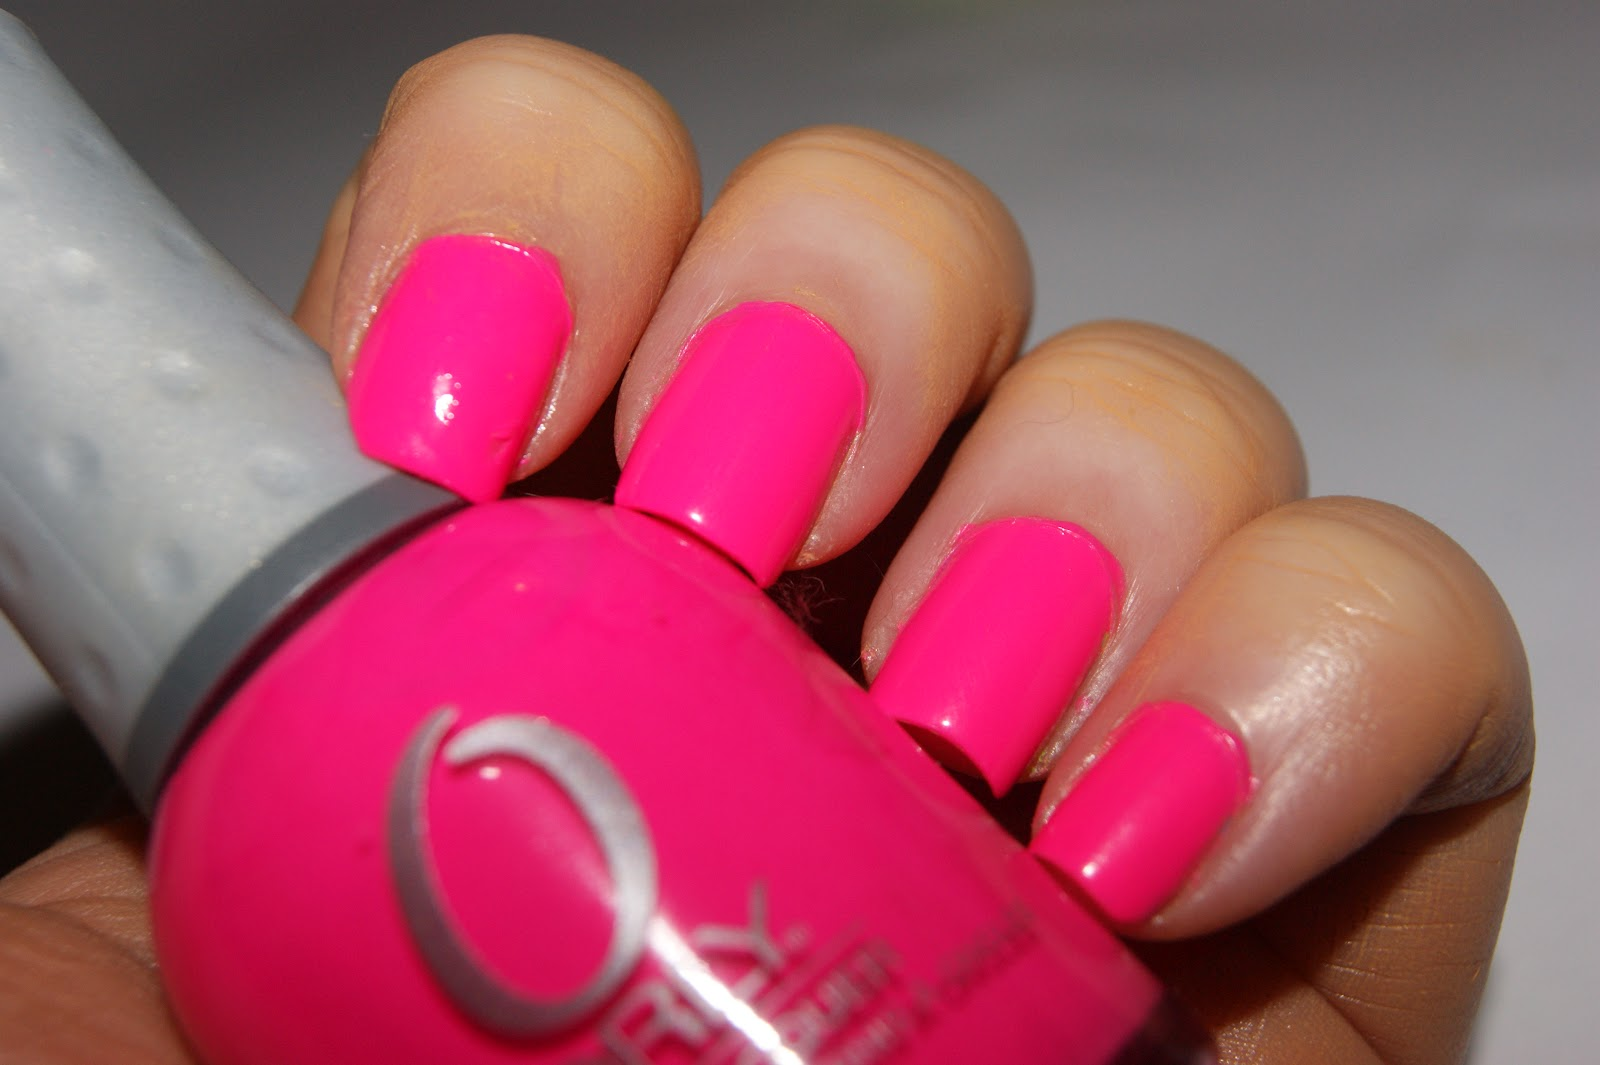 Orly Beach Cruiser Nail Lacquer - Review | The Sunday Girl